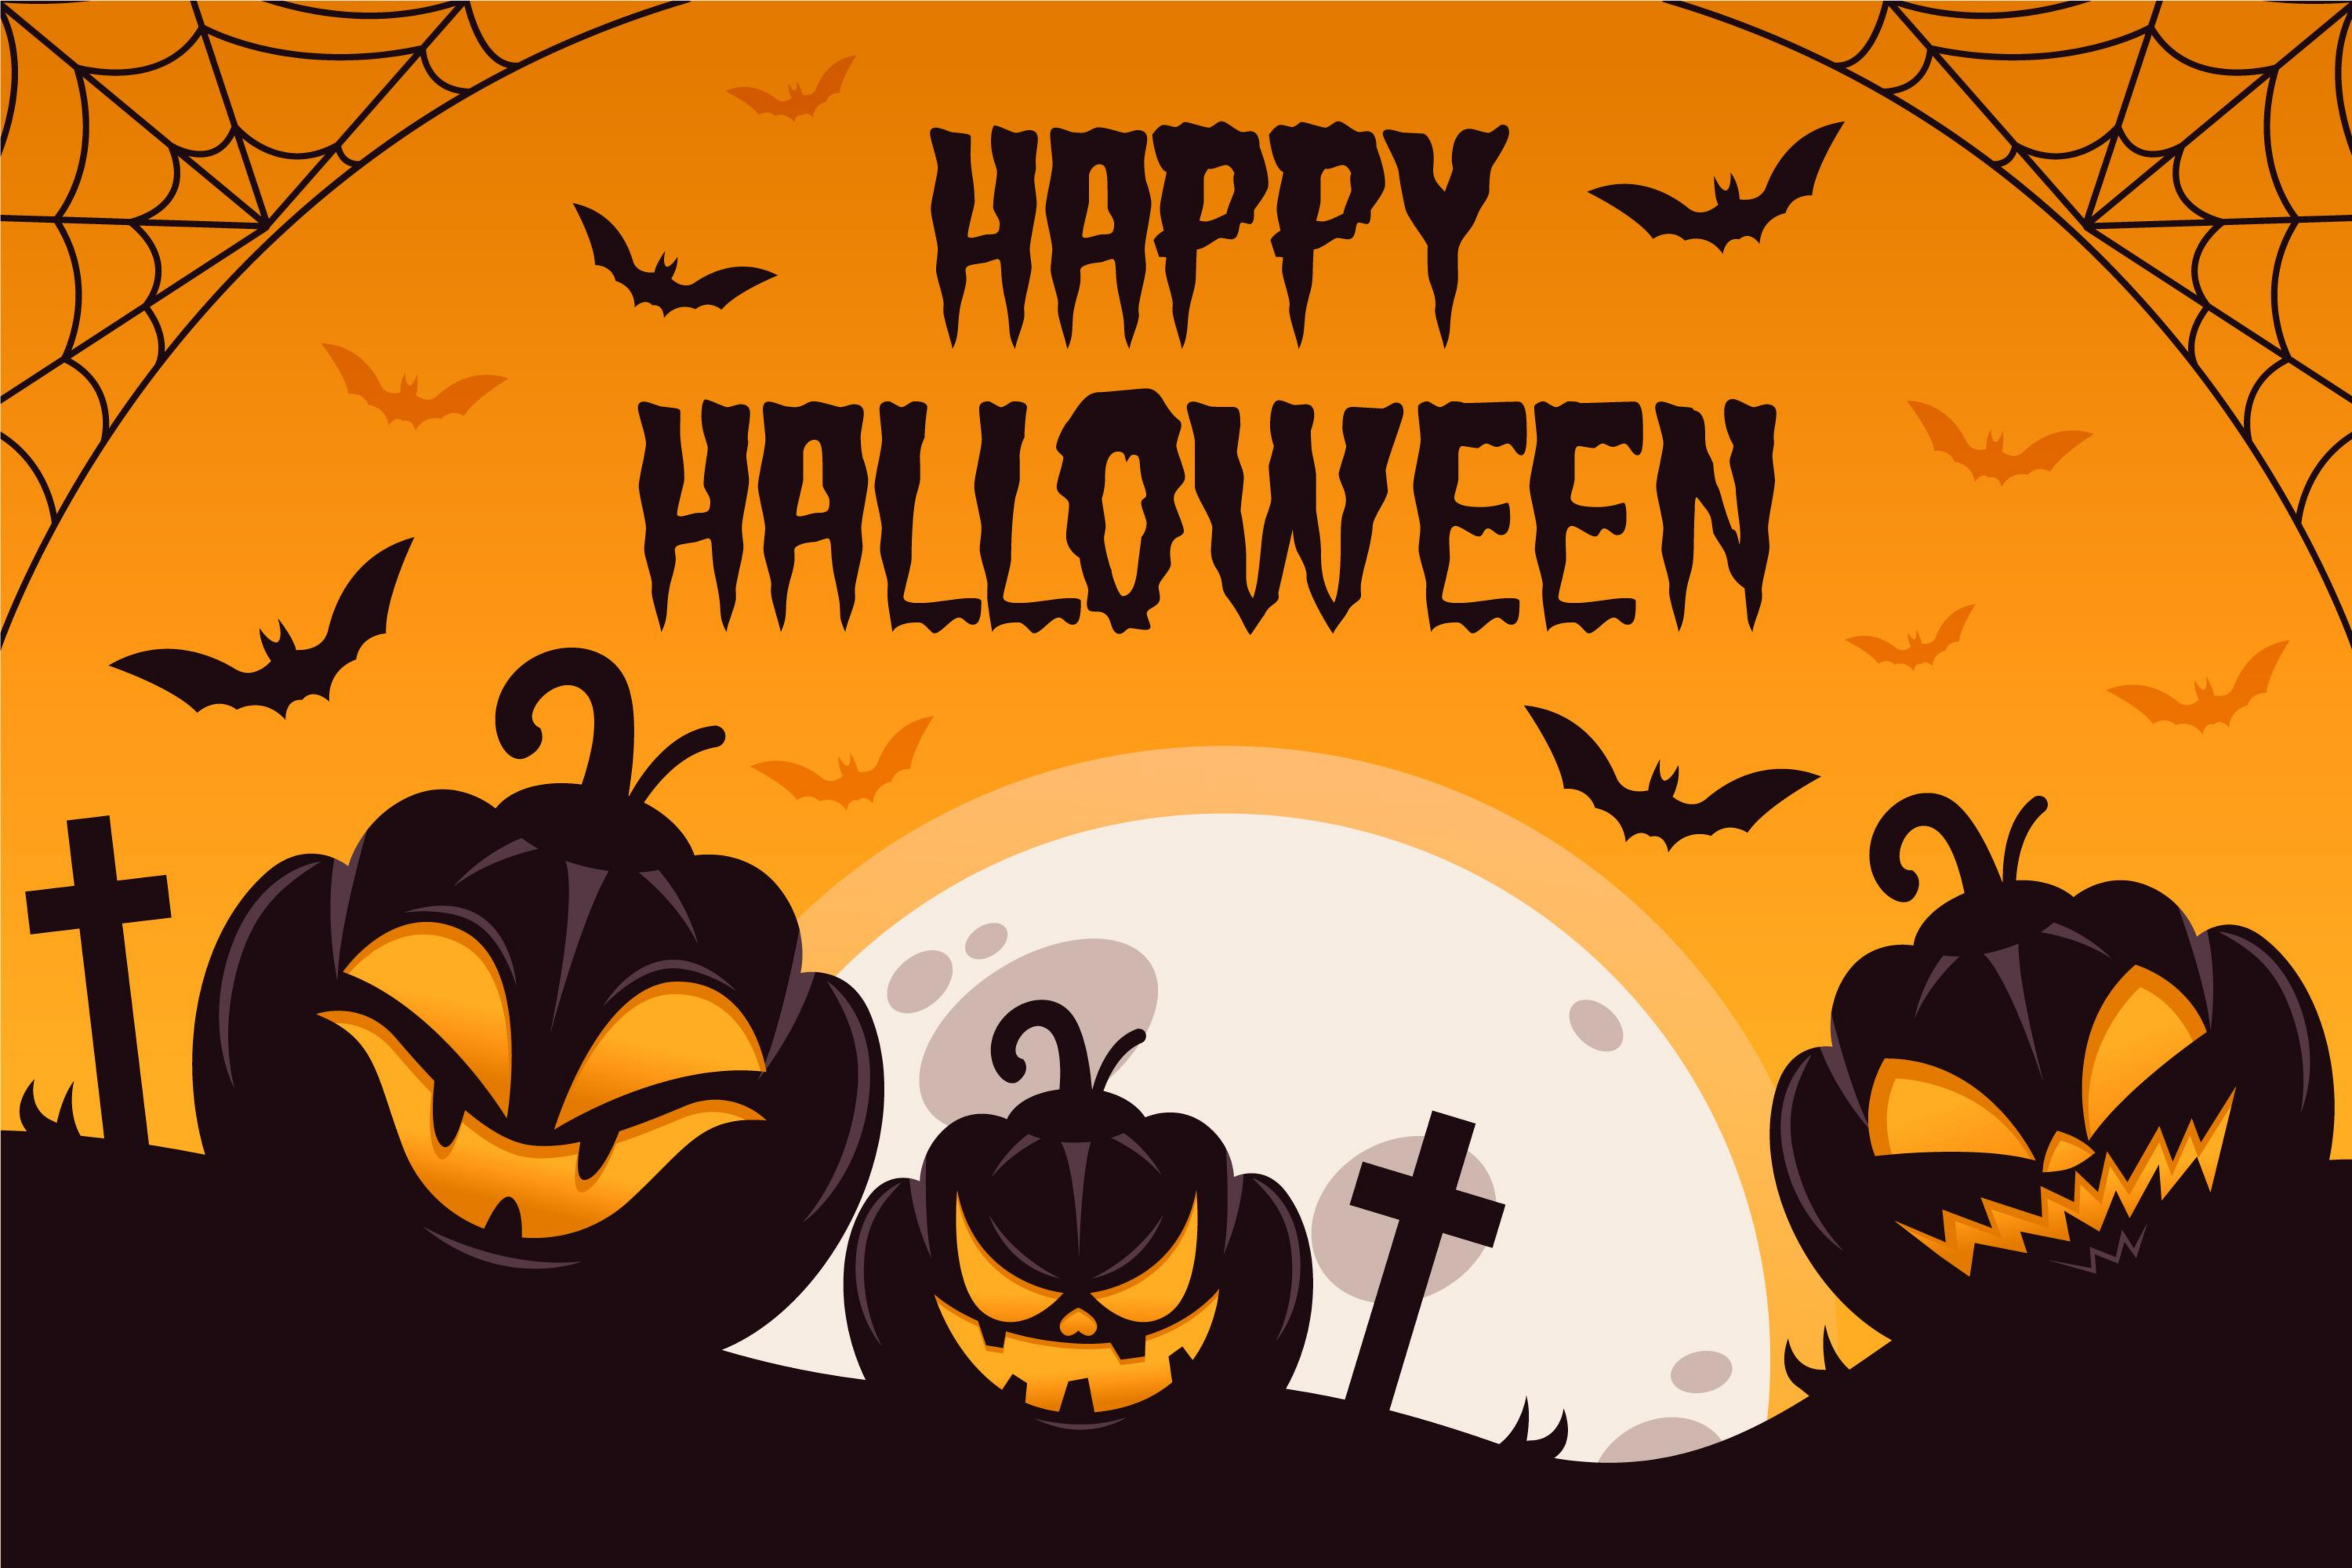 Do fascinating Halloween flyers and posters